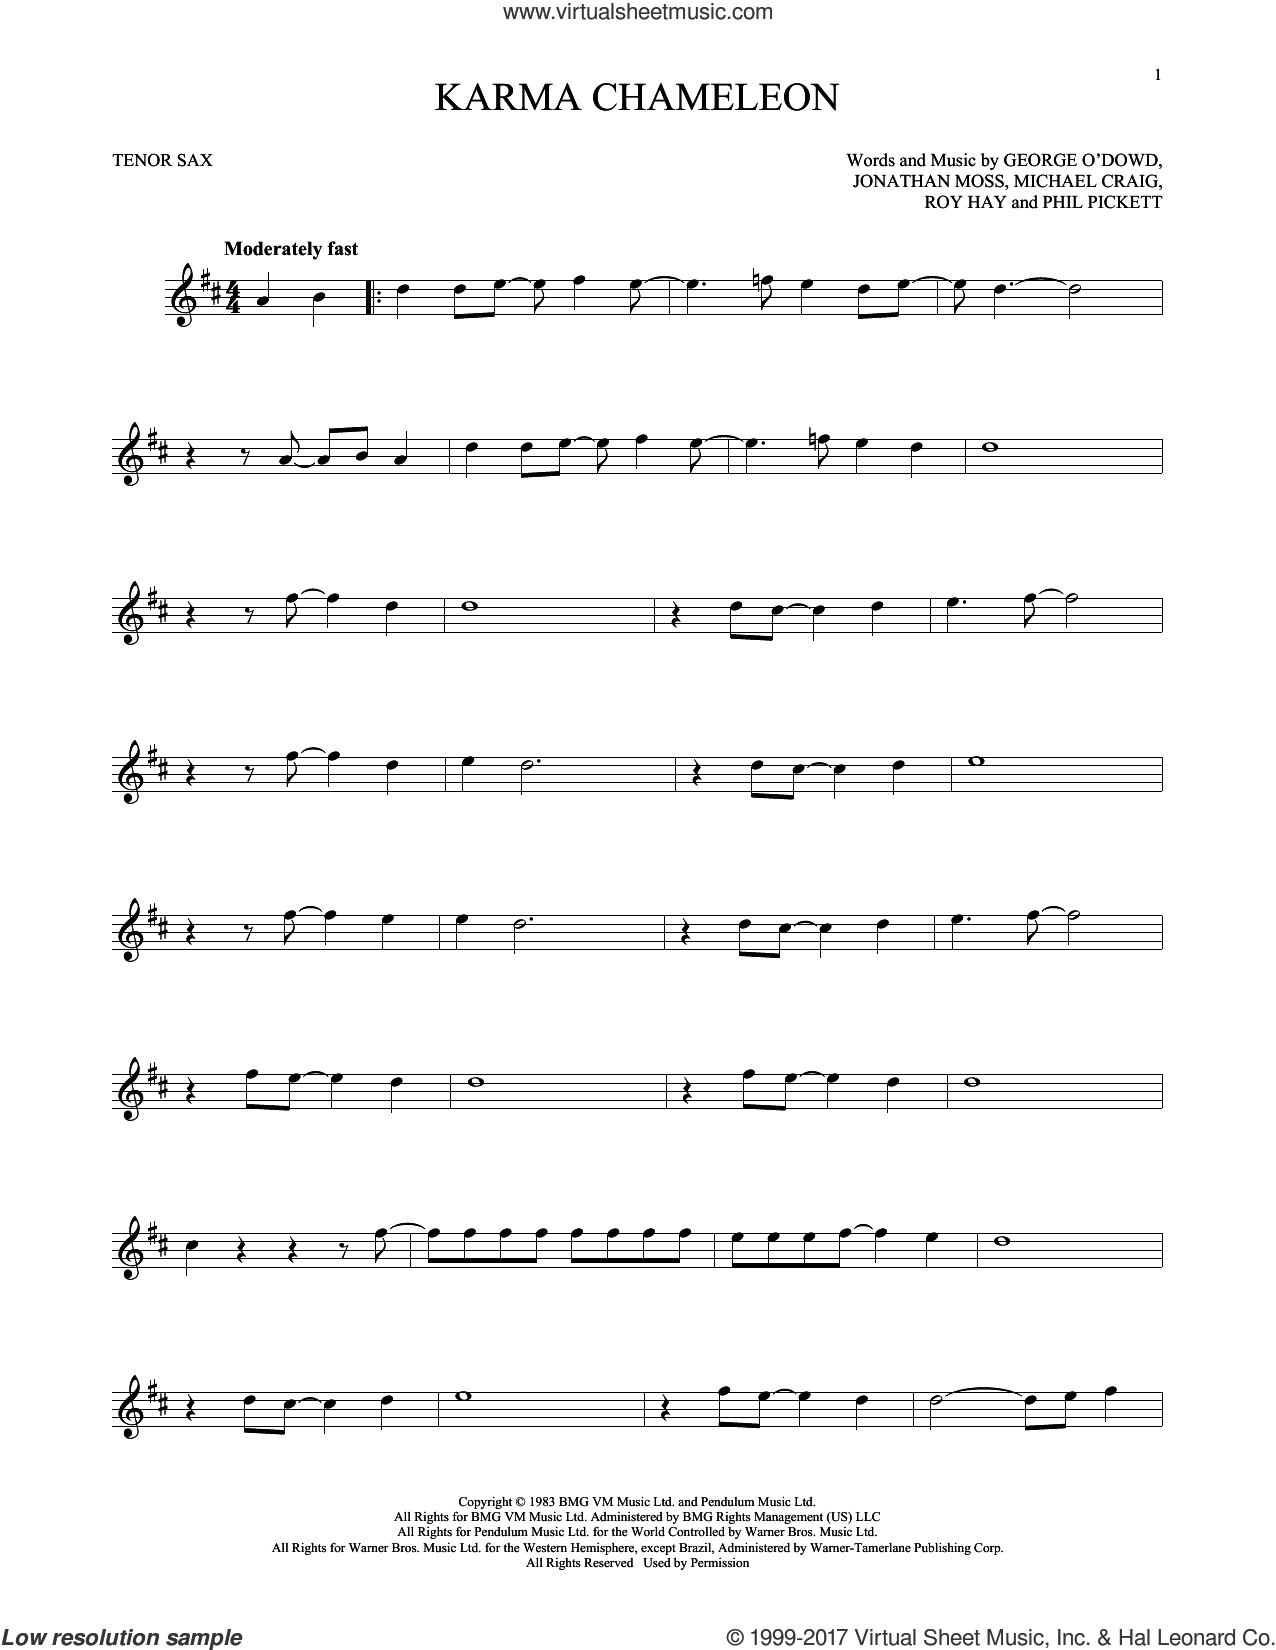 Karma Chameleon sheet music for tenor saxophone solo by Culture Club, Jonathan Moss, Michael Craig, Phil Pickett and Roy Hay, intermediate skill level